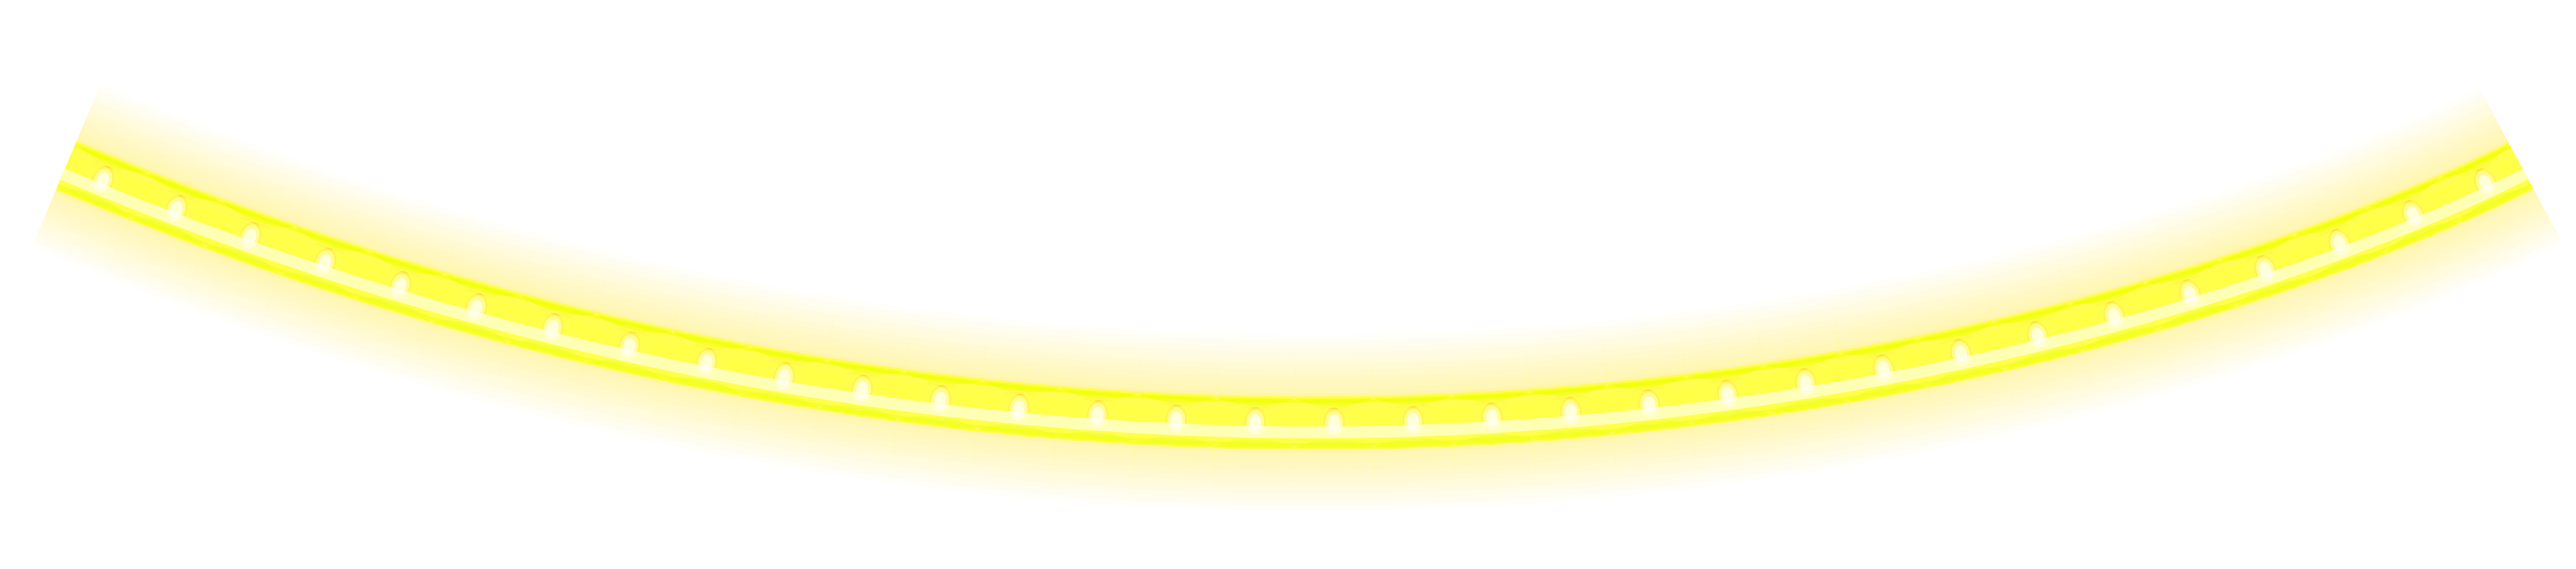 Glowing light png excellent. Flashlight clipart glow